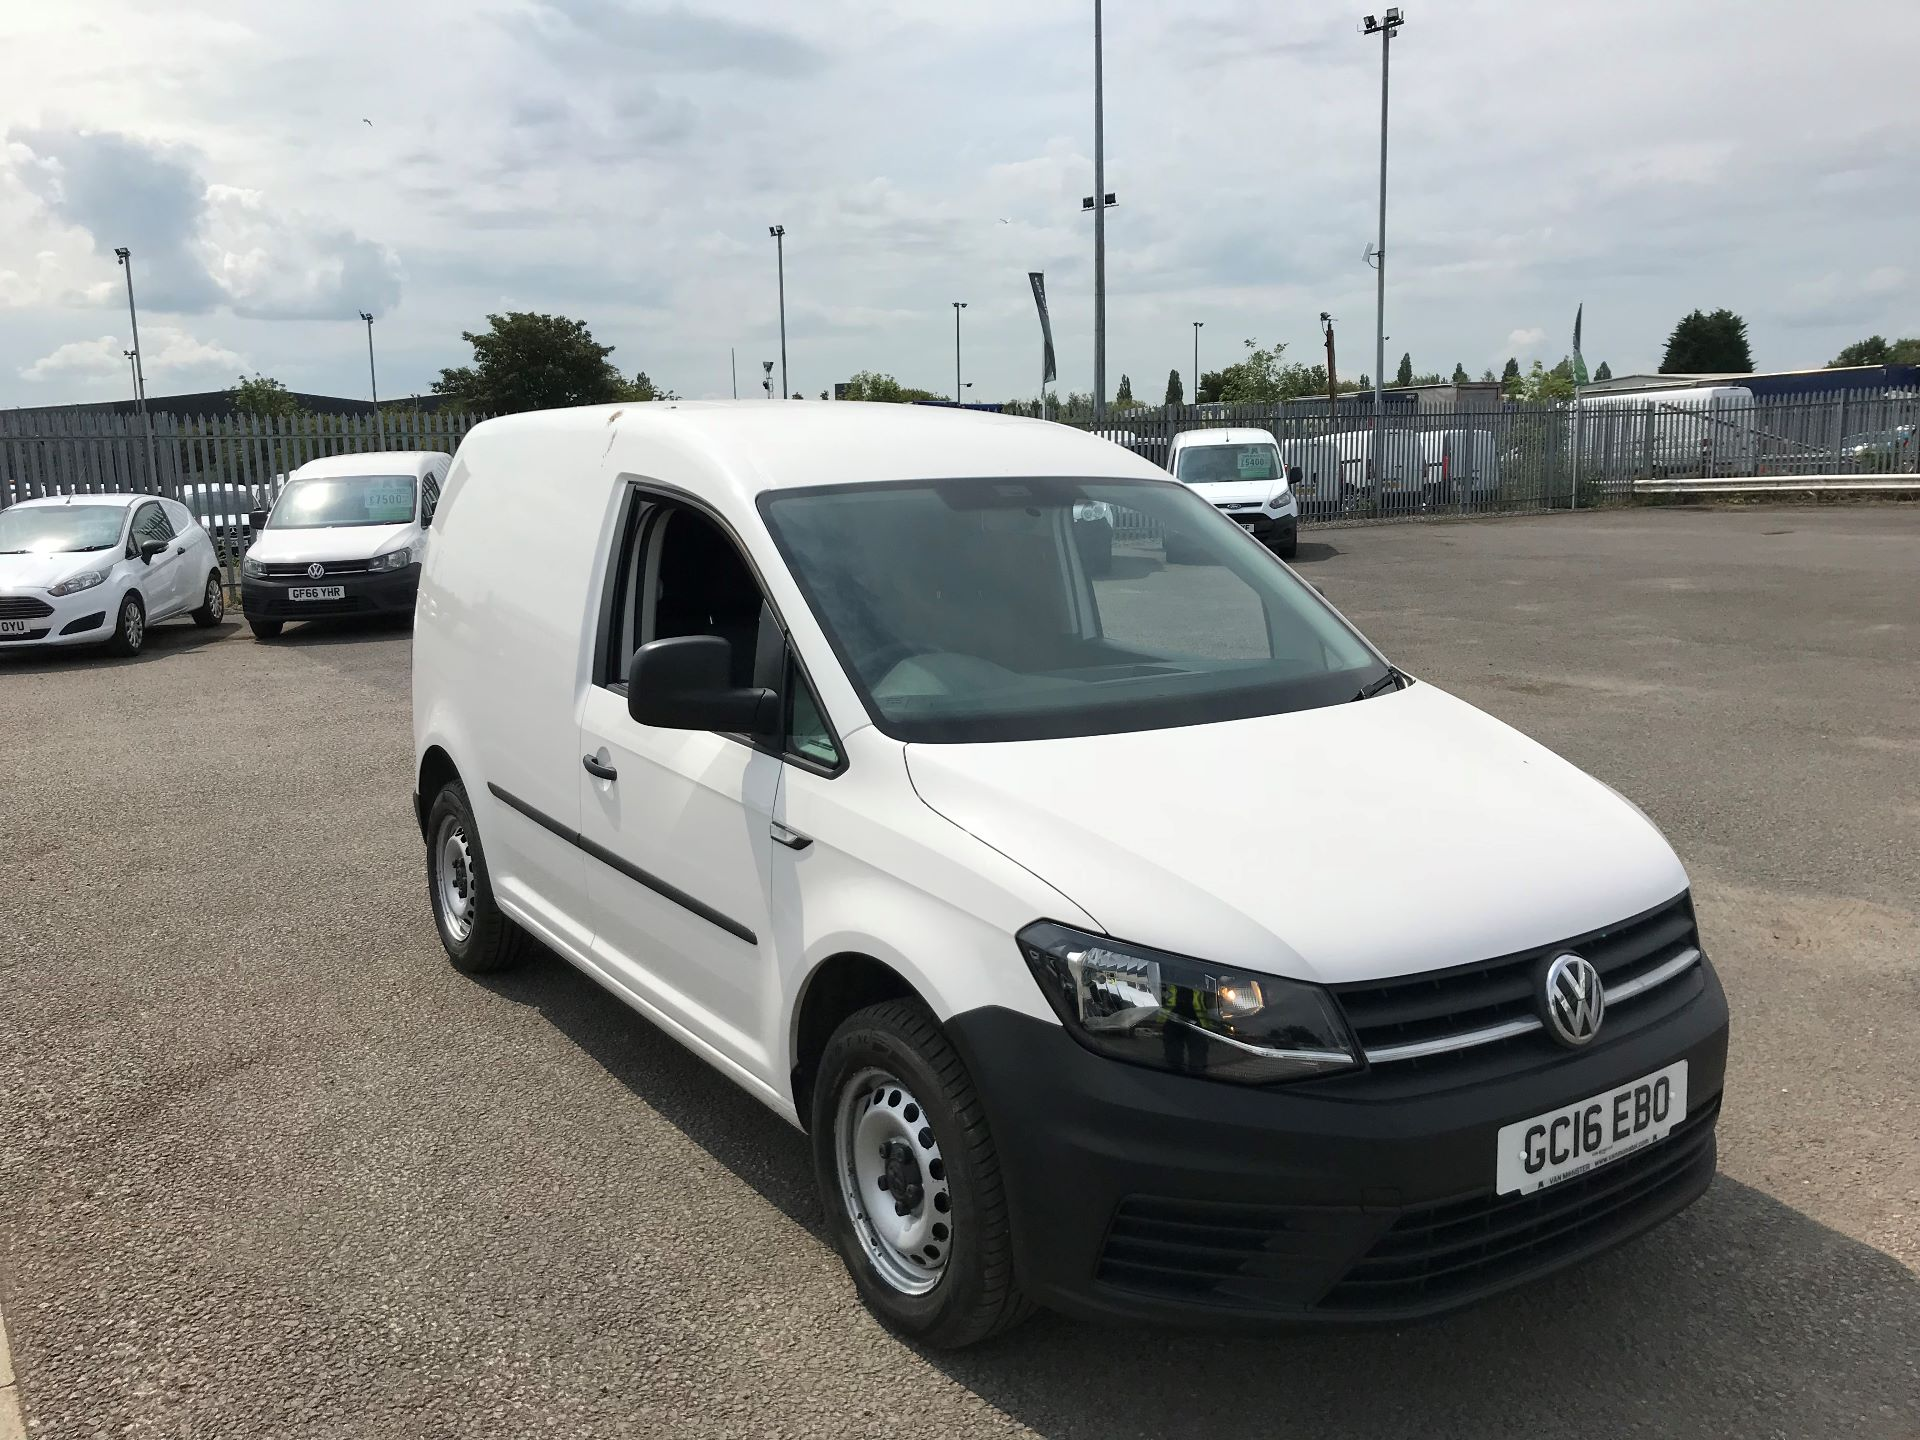 2016 Volkswagen Caddy  2.0 102PS BLUEMOTION TECH 102 STARTLINE EURO 6 (GC16EBO)